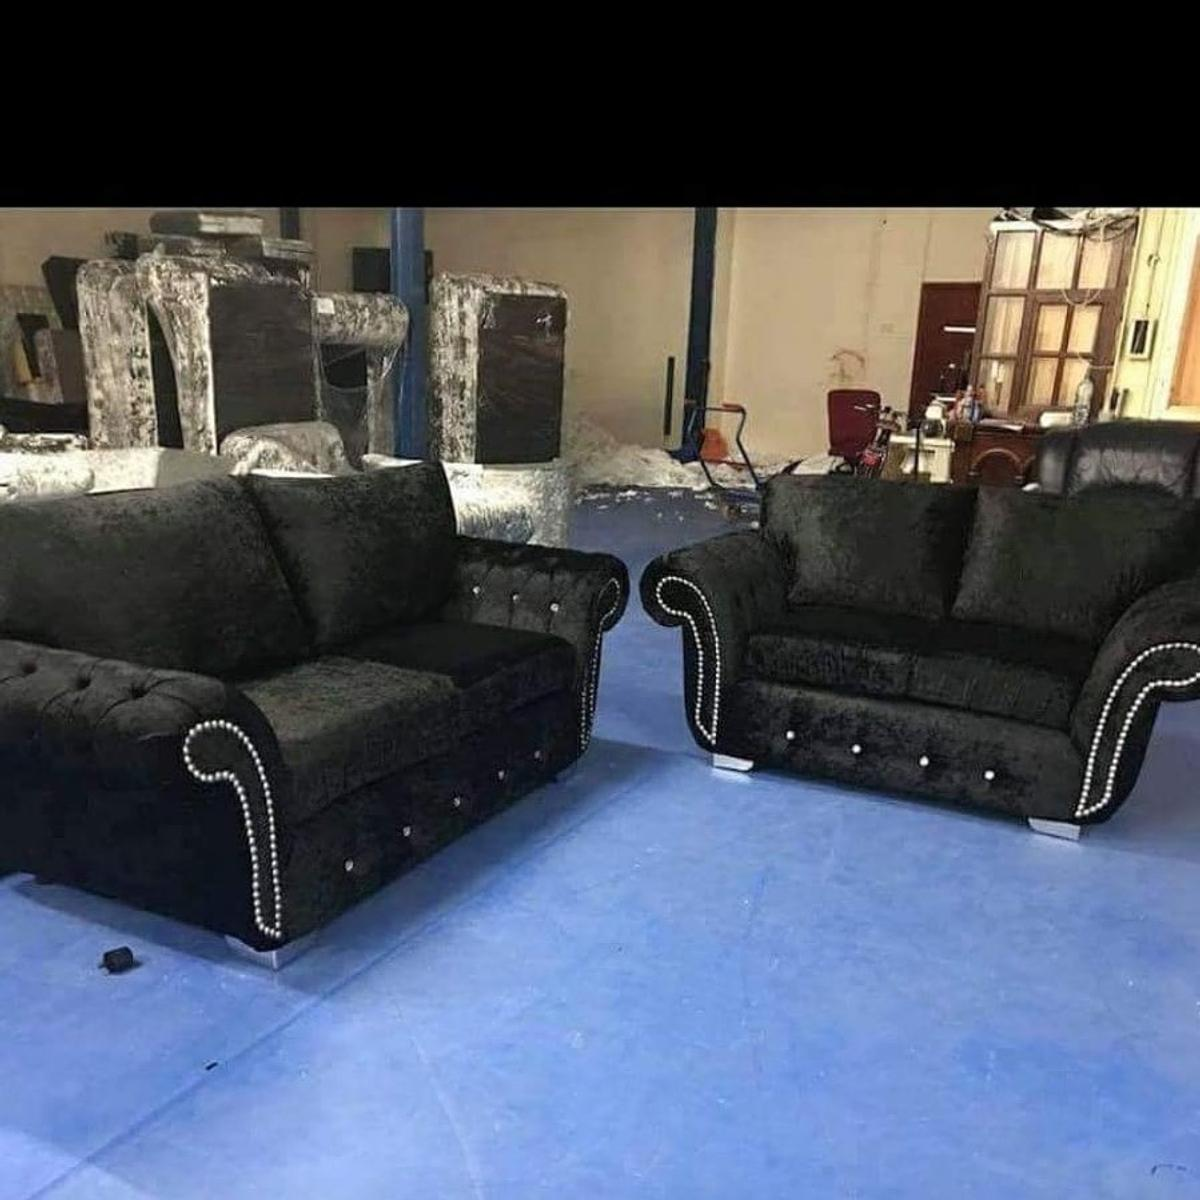 New Sofa Sets In Ss117rg Es For 750 00 Shpock